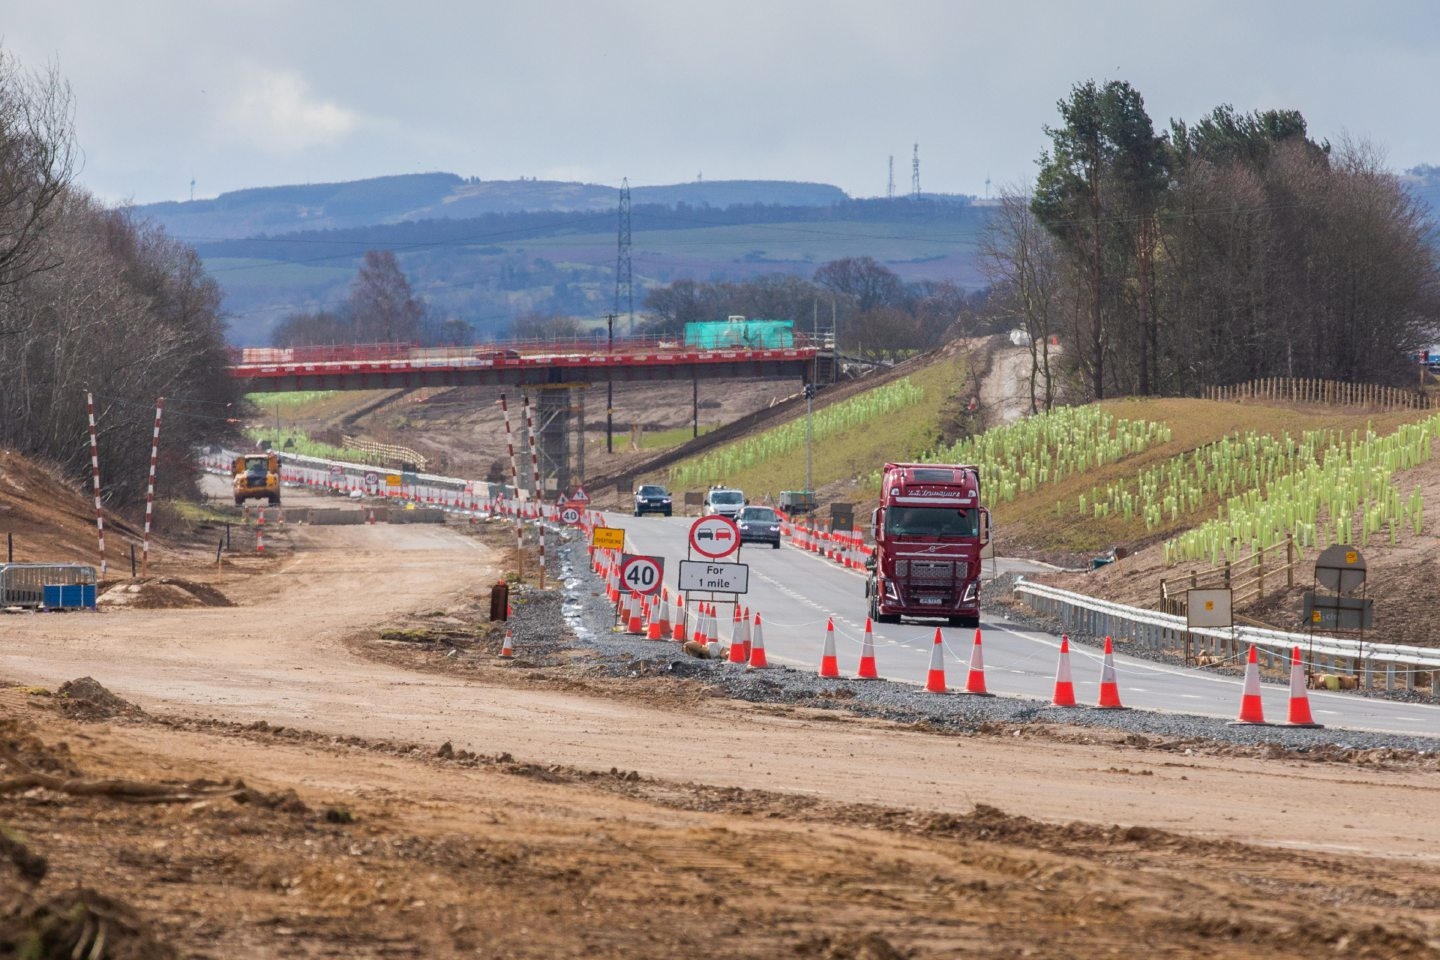 The scene near the Stanley/Bankfoot junction of the A9.